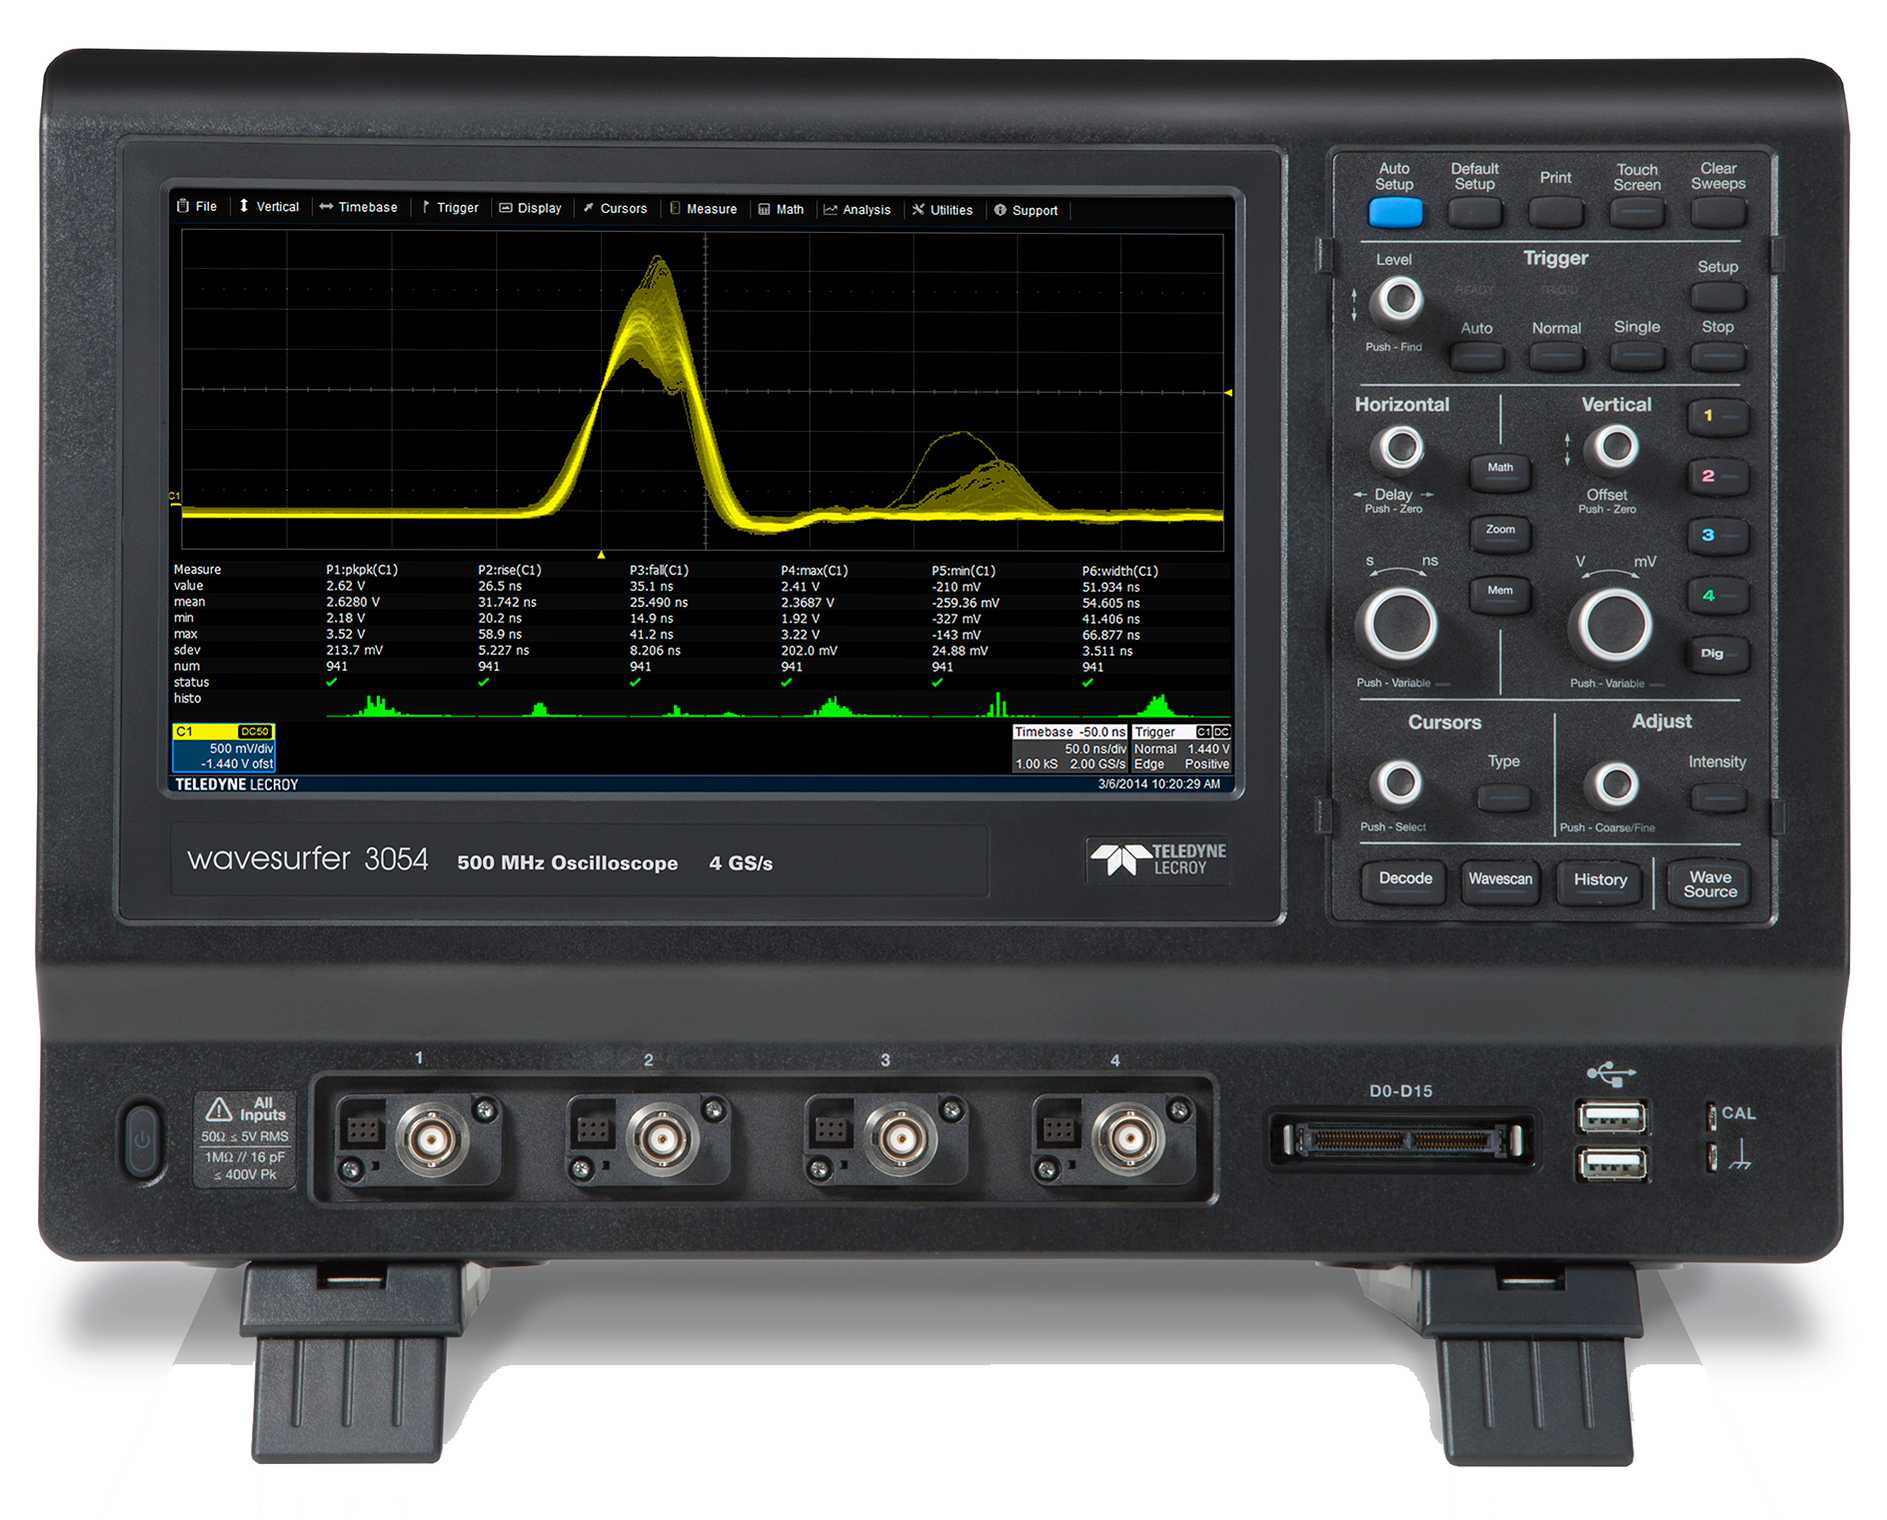 "Osciloscoape Teledyne LeCroy WAVESURFER 3024 - 200 MHz, 4 GS/s, 4 Ch, 10 Mpts/ch DSO with 10.1"" Wide screen Color Touch Screen Display"